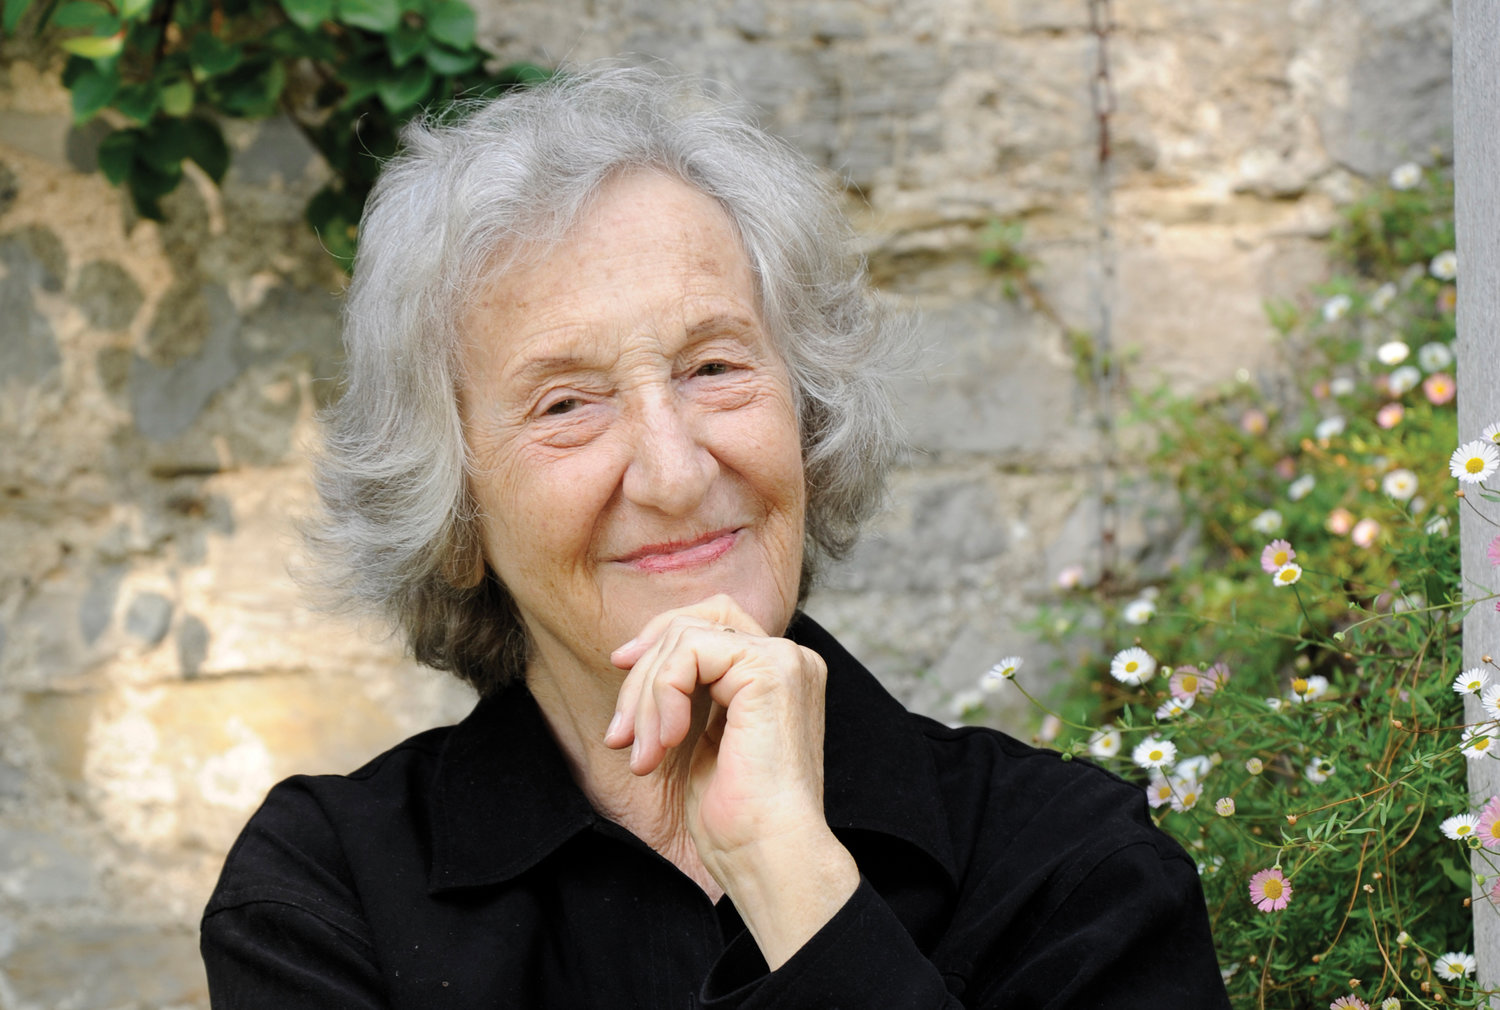 The Society of Composers and Lyricists Seminar: Composer-to-Composer with Thea Musgrave - Thea Musgrave